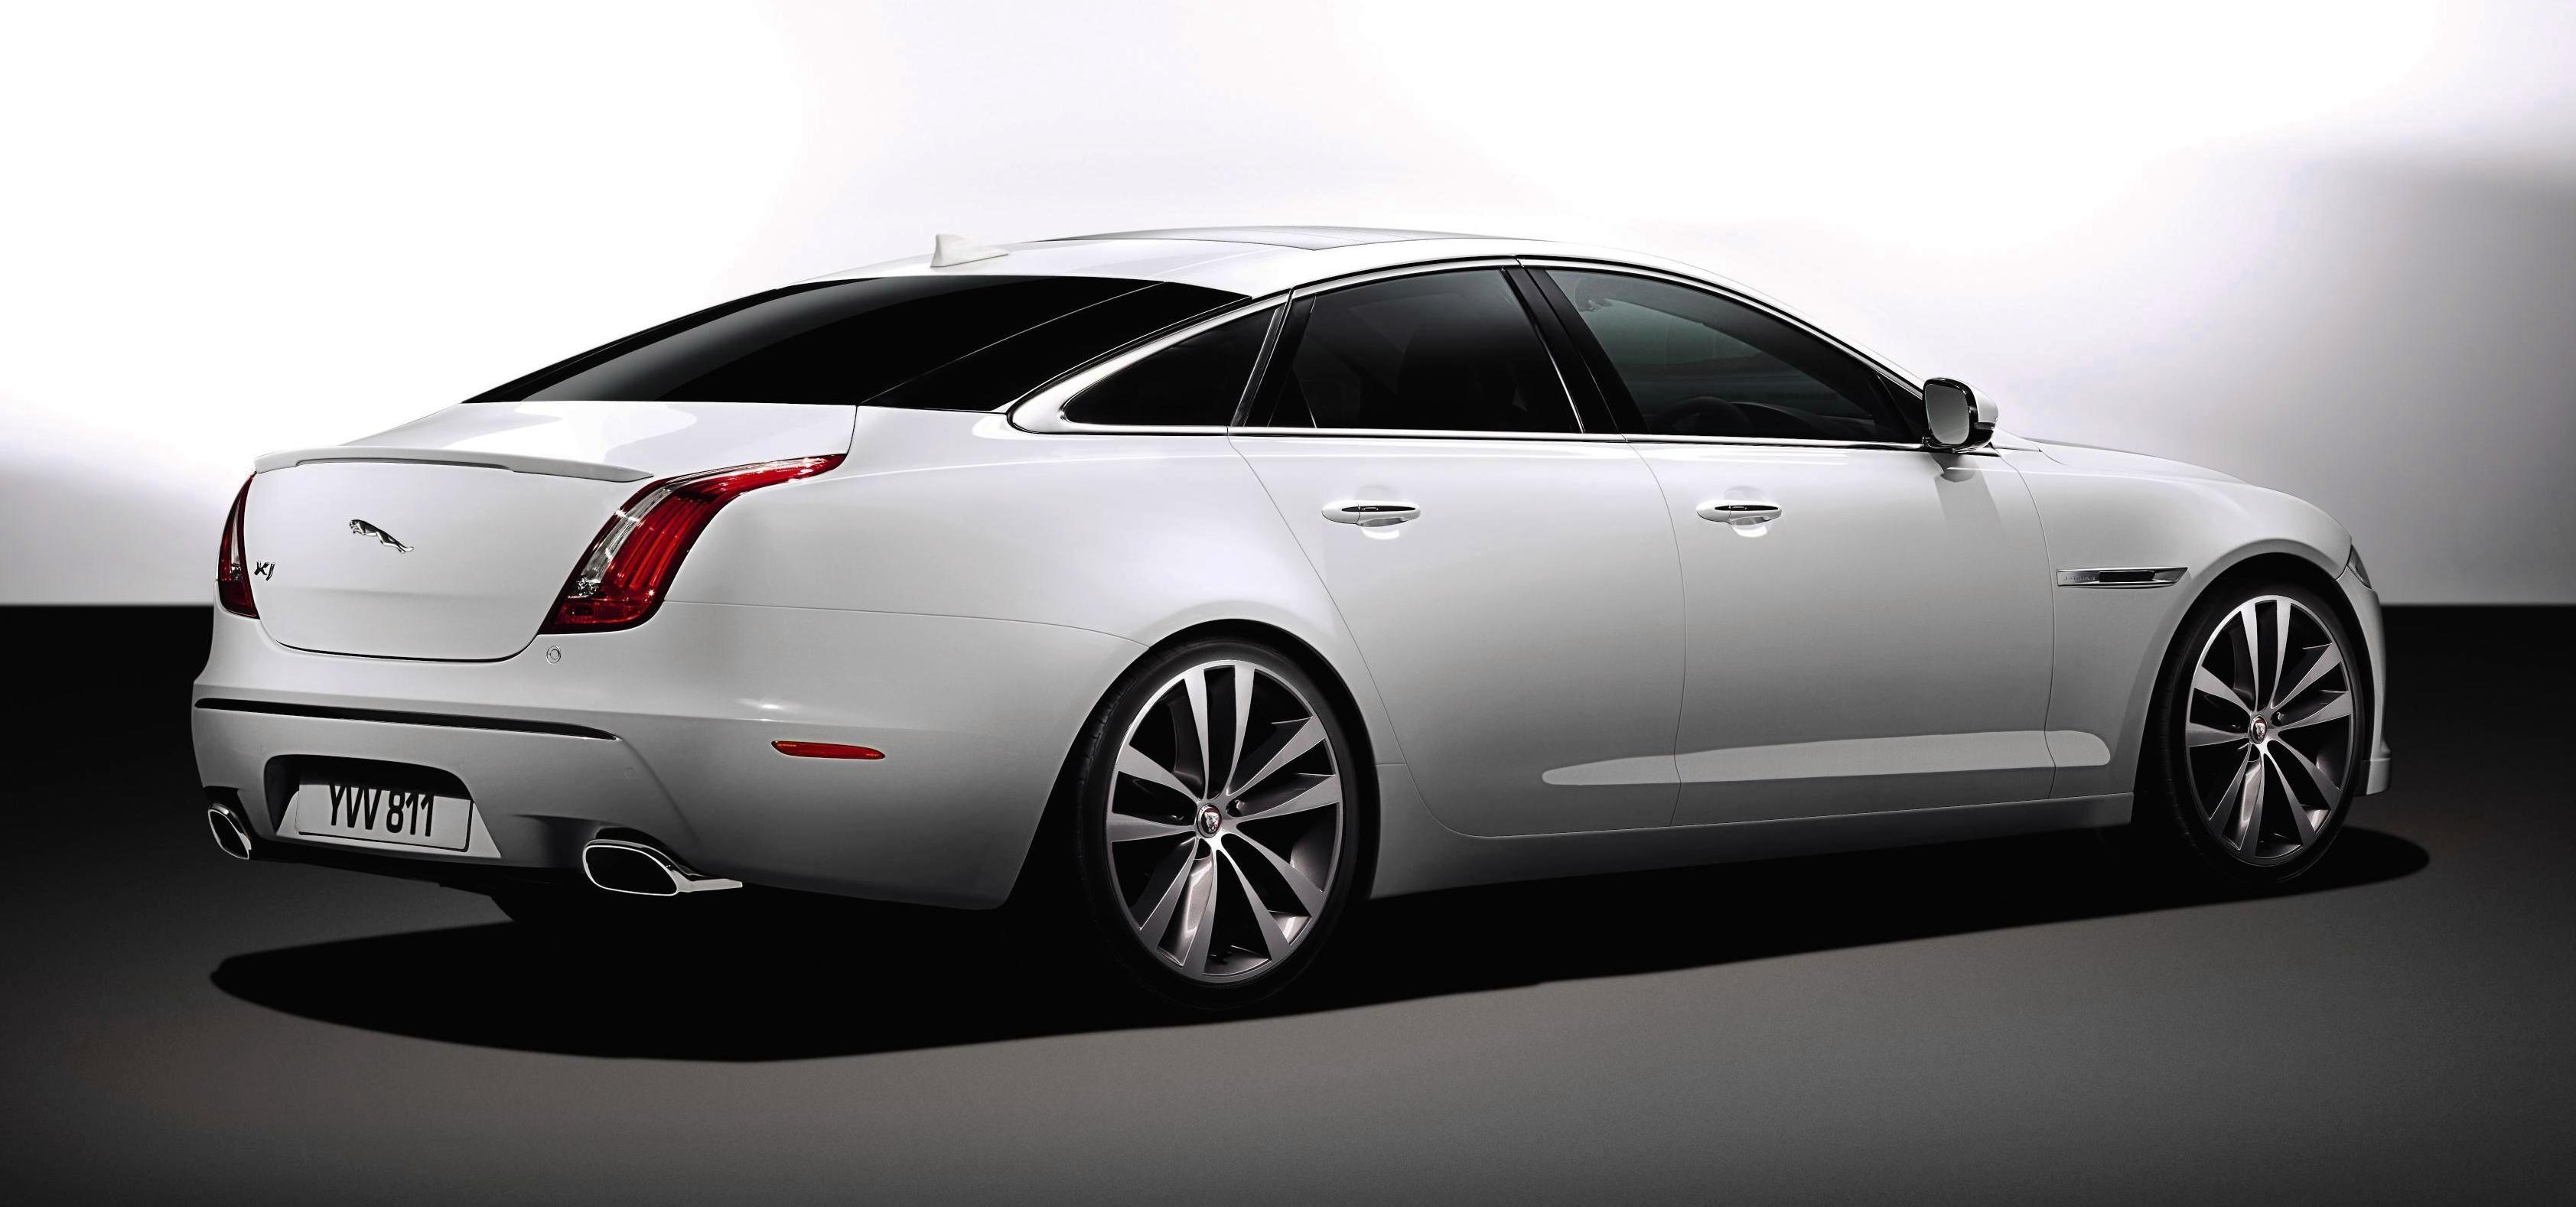 Twilight Of A Champion The Decline Of The Jaguar Xj Driven To Write